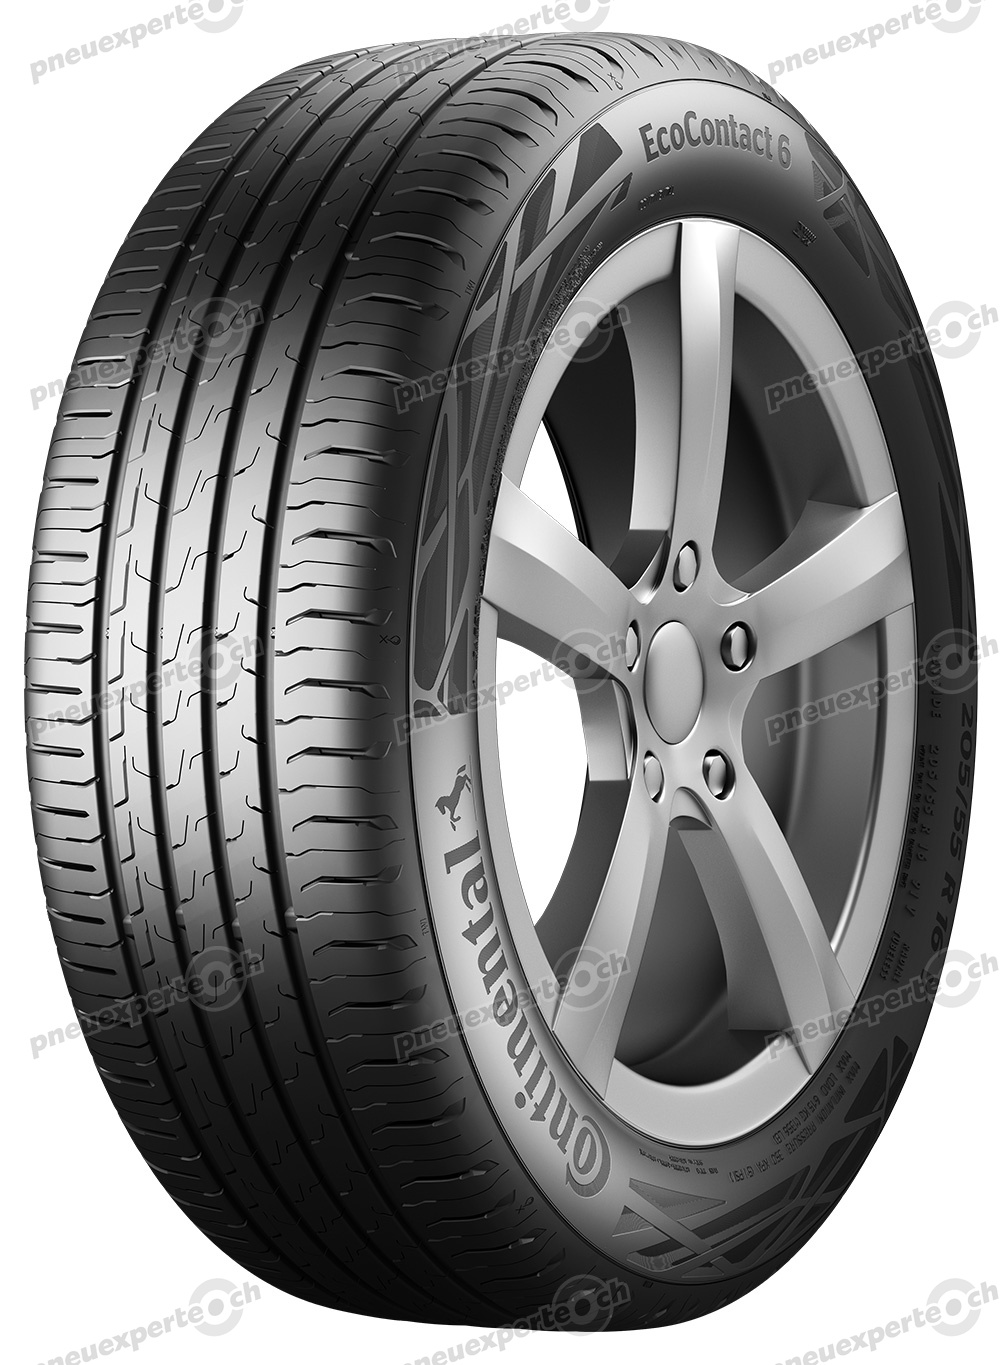 PNEUMATICO GOMMA CONTINENTAL WINTERCONTACT TS 860 FR 205 55 R16 91H TL INVERNALE